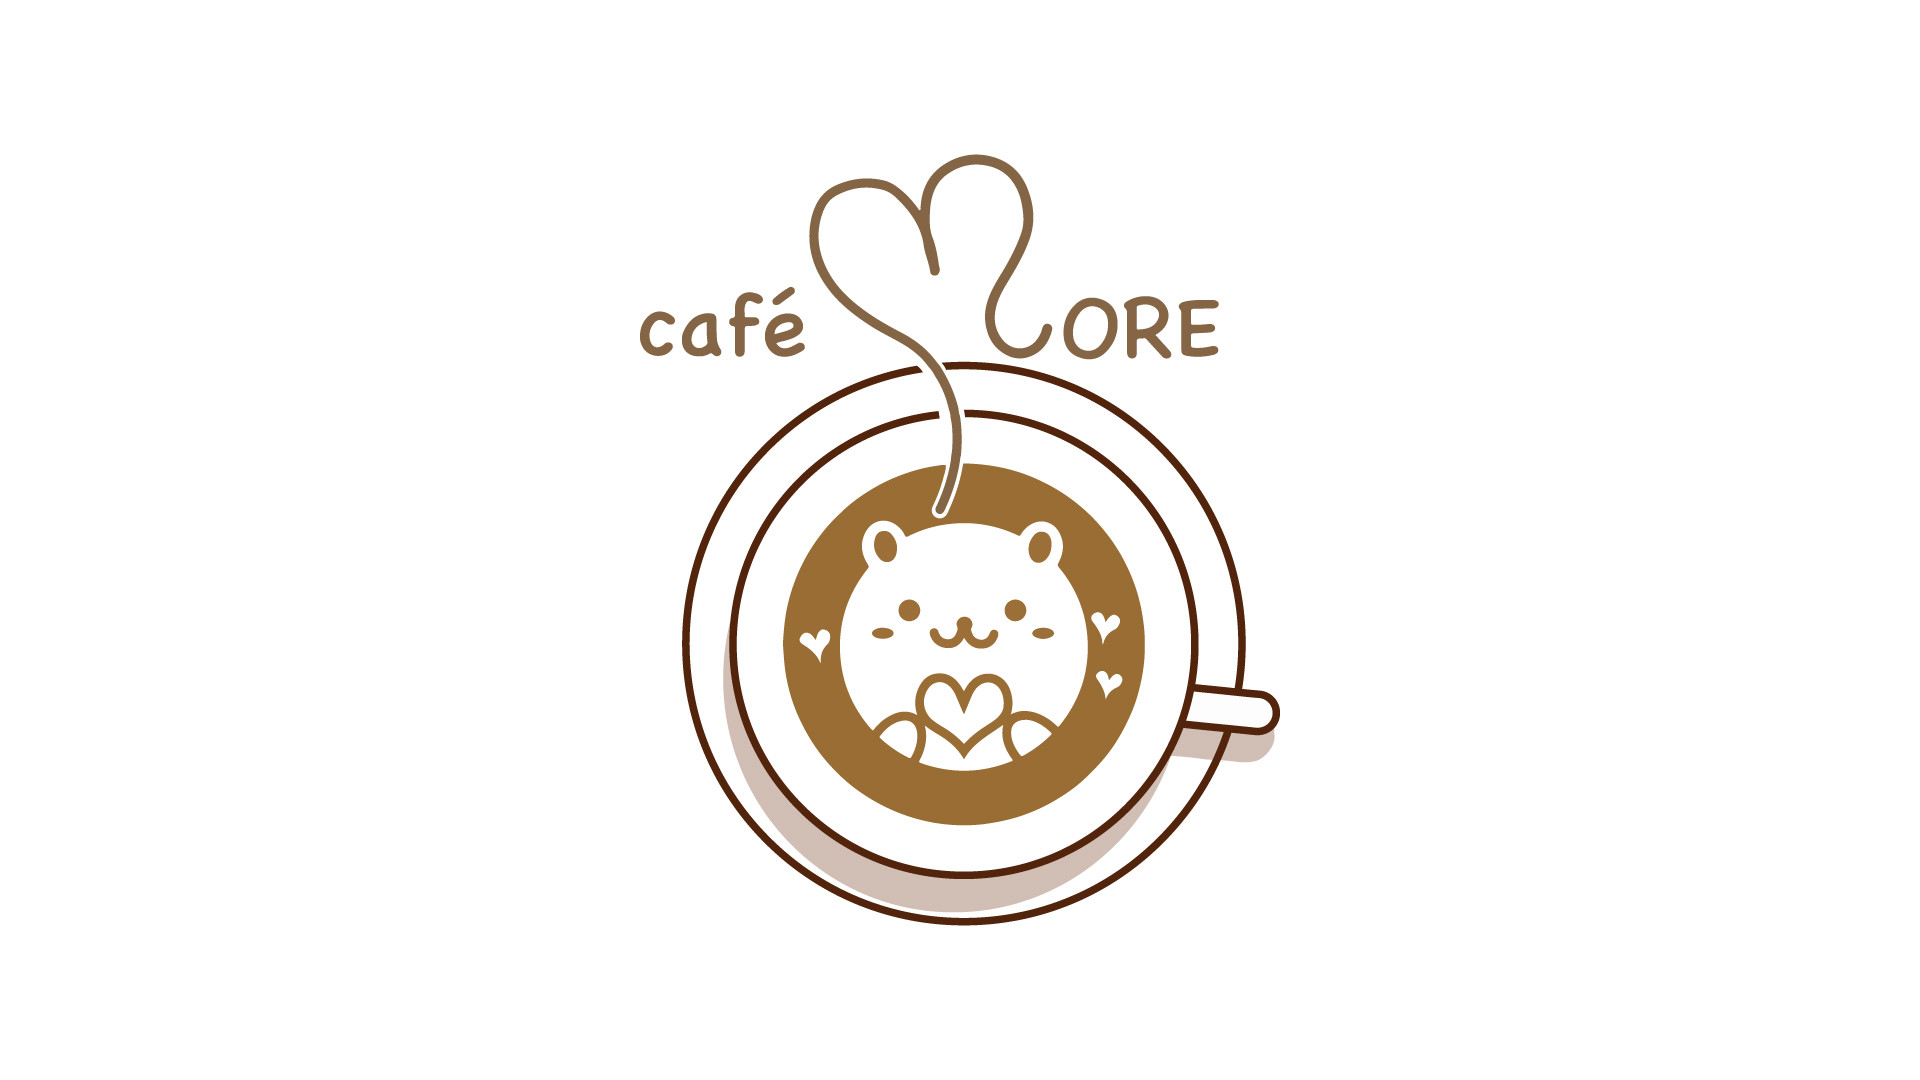 cafe MORE